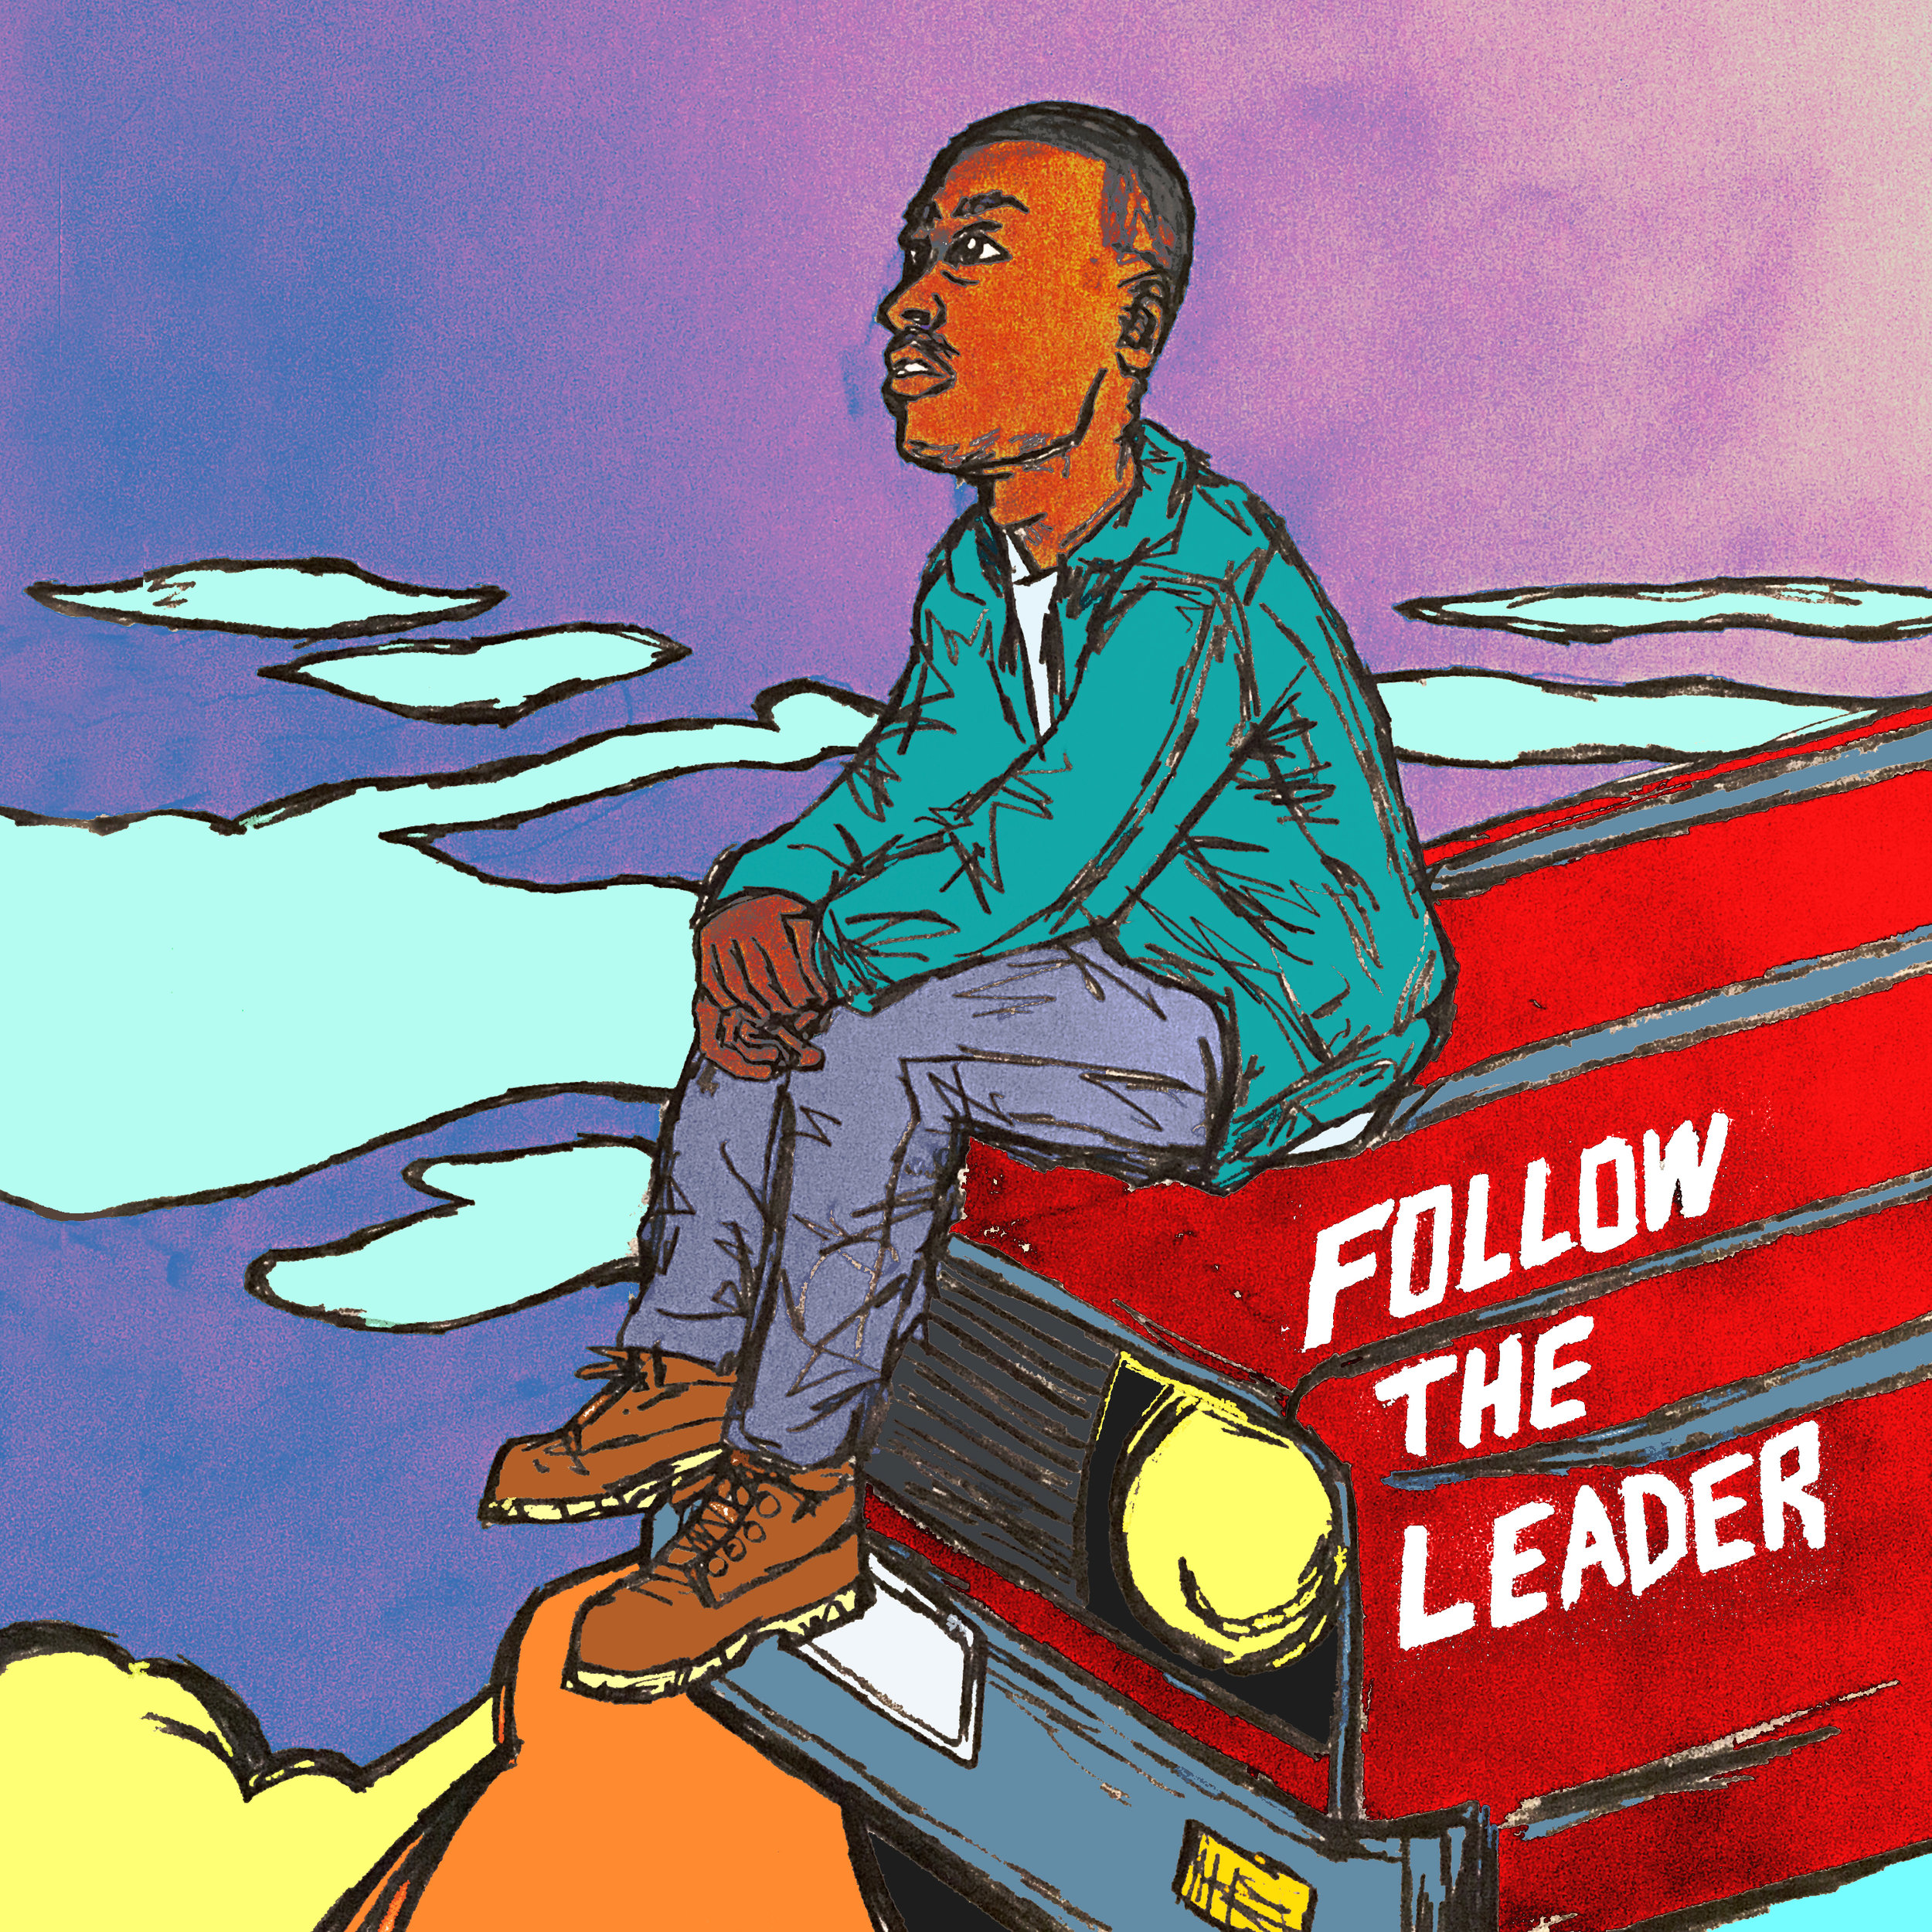 Follow the Leader in the style of jazz by produced by Jonathan Hay, Mike Smith, Benny Reid, Mani Ajami, Atlas Jenkins and Bram Bessoff.